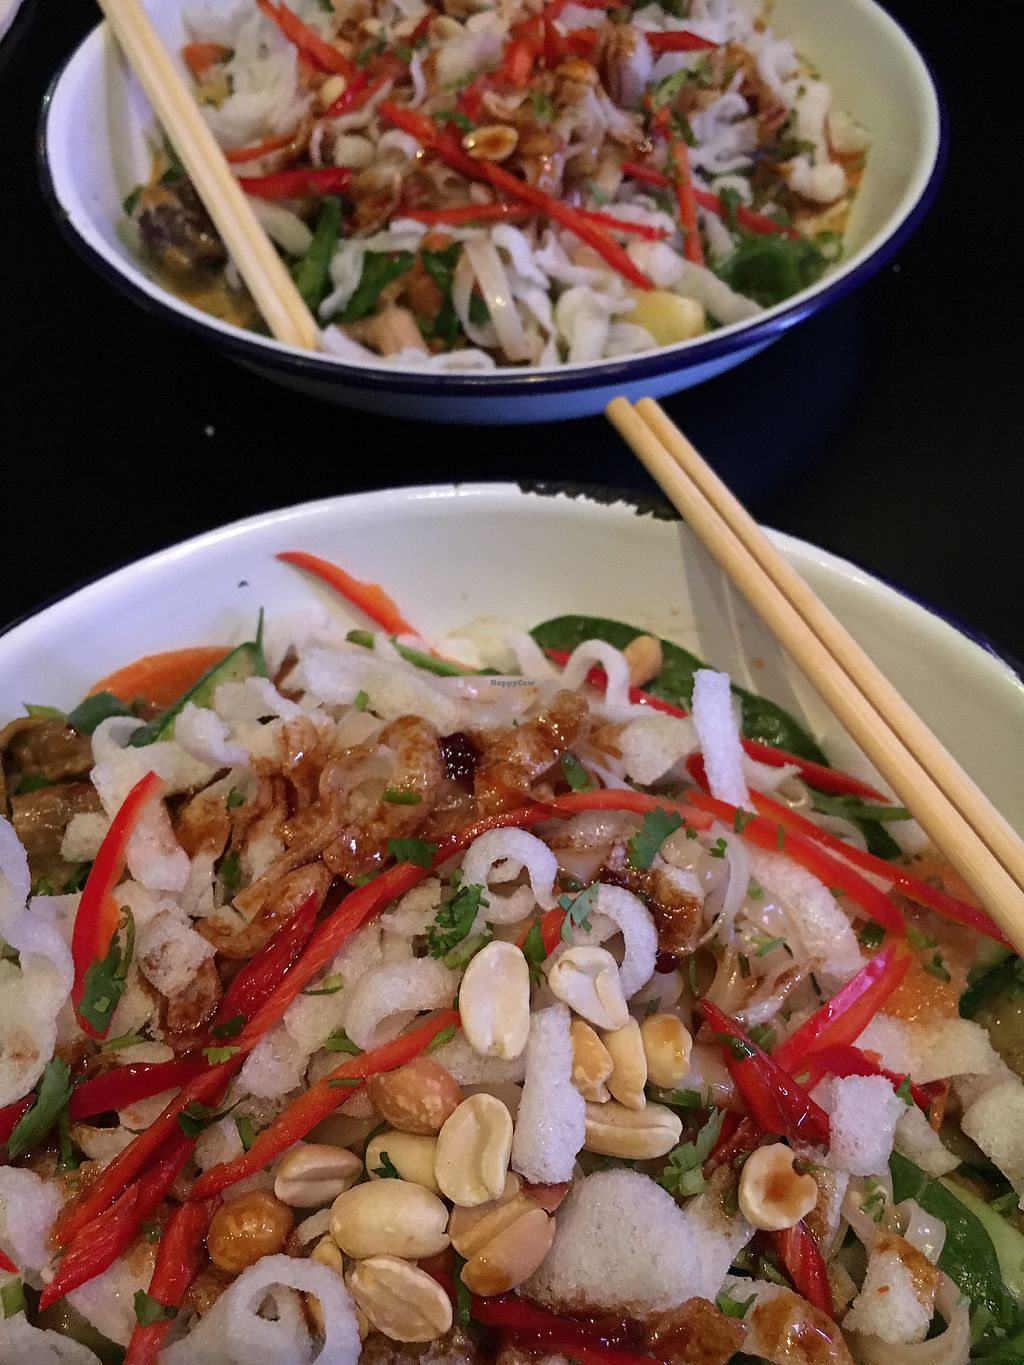 """Photo of The Cock  by <a href=""""/members/profile/SeitanSeitanSeitan"""">SeitanSeitanSeitan</a> <br/>Saigon noodles with veef and other yummy stuff <br/> January 6, 2018  - <a href='/contact/abuse/image/58801/343599'>Report</a>"""